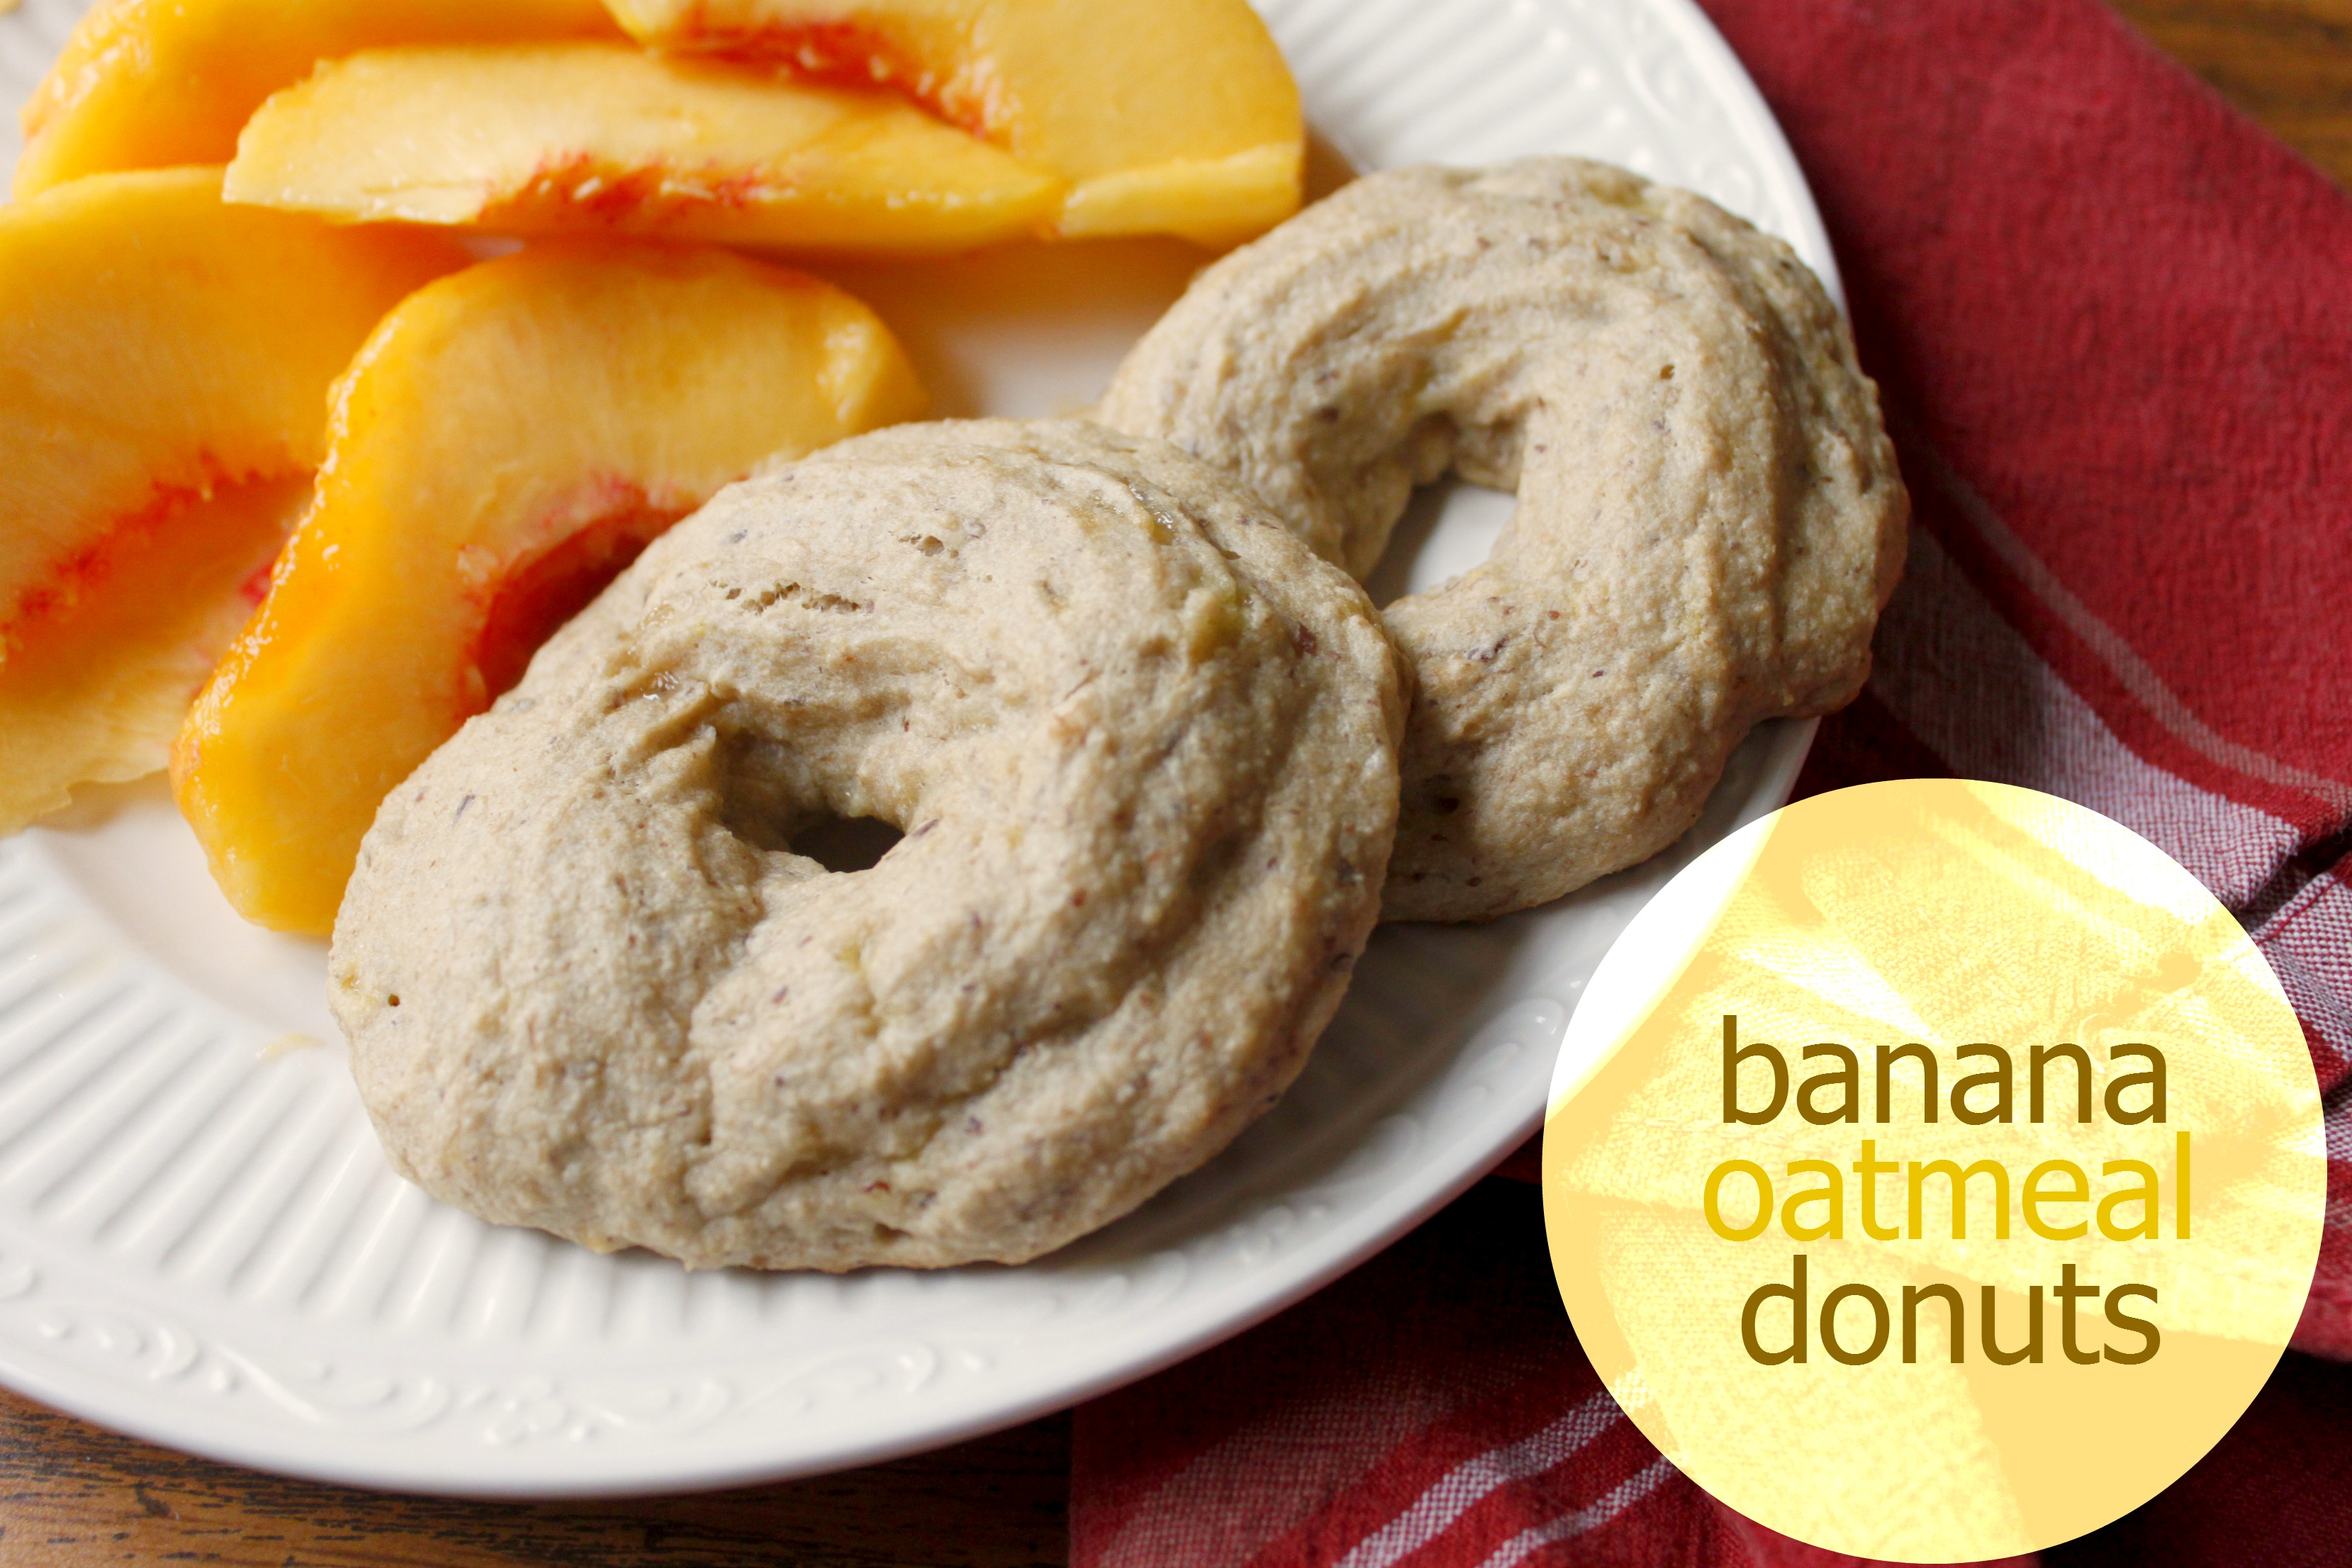 Banana Oatmeal Donuts: Gluten-Free, Dairy-Free, Egg-Free, Sugar-Free and Delicious!